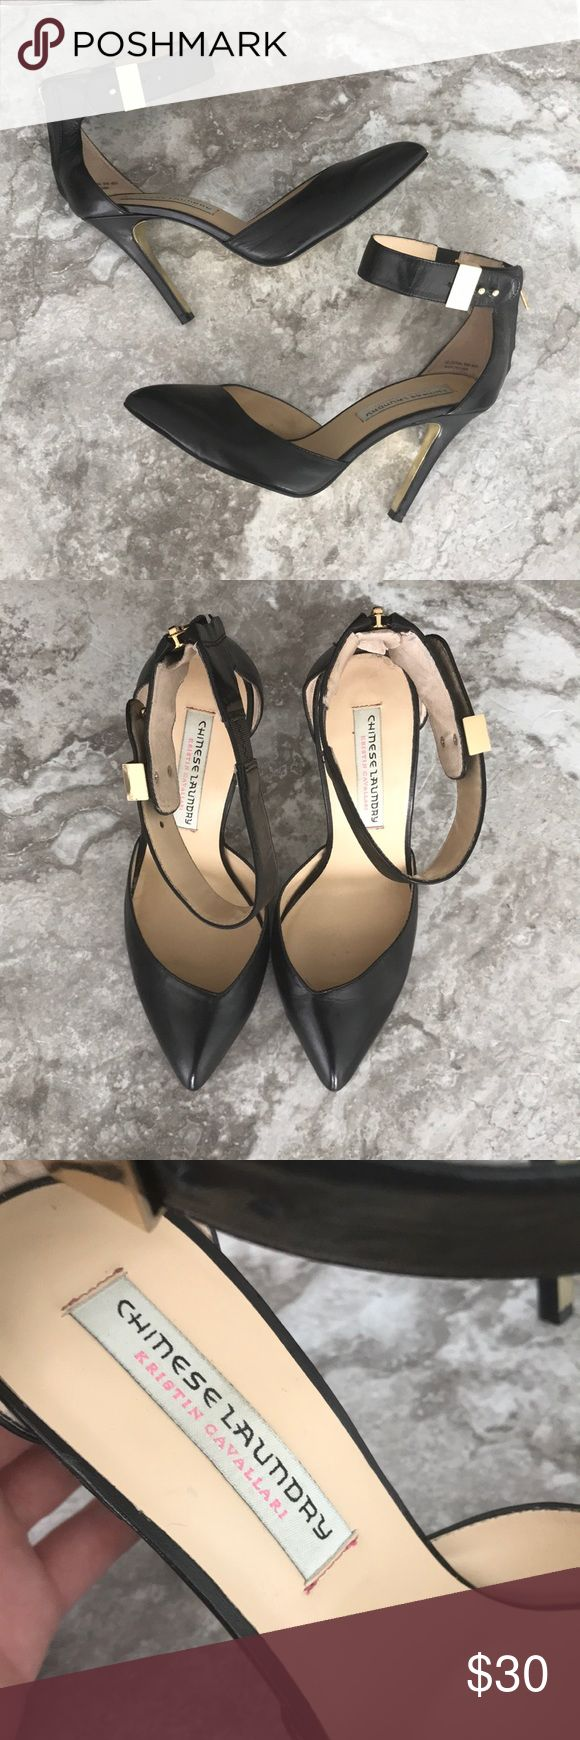 Kristin Cavallari for Chinese Laundry pumps Very sexy ankle strap pumps from the Kristin Cavallari collection. Black leather with gold hardware. Good used condition Chinese Laundry Shoes Heels